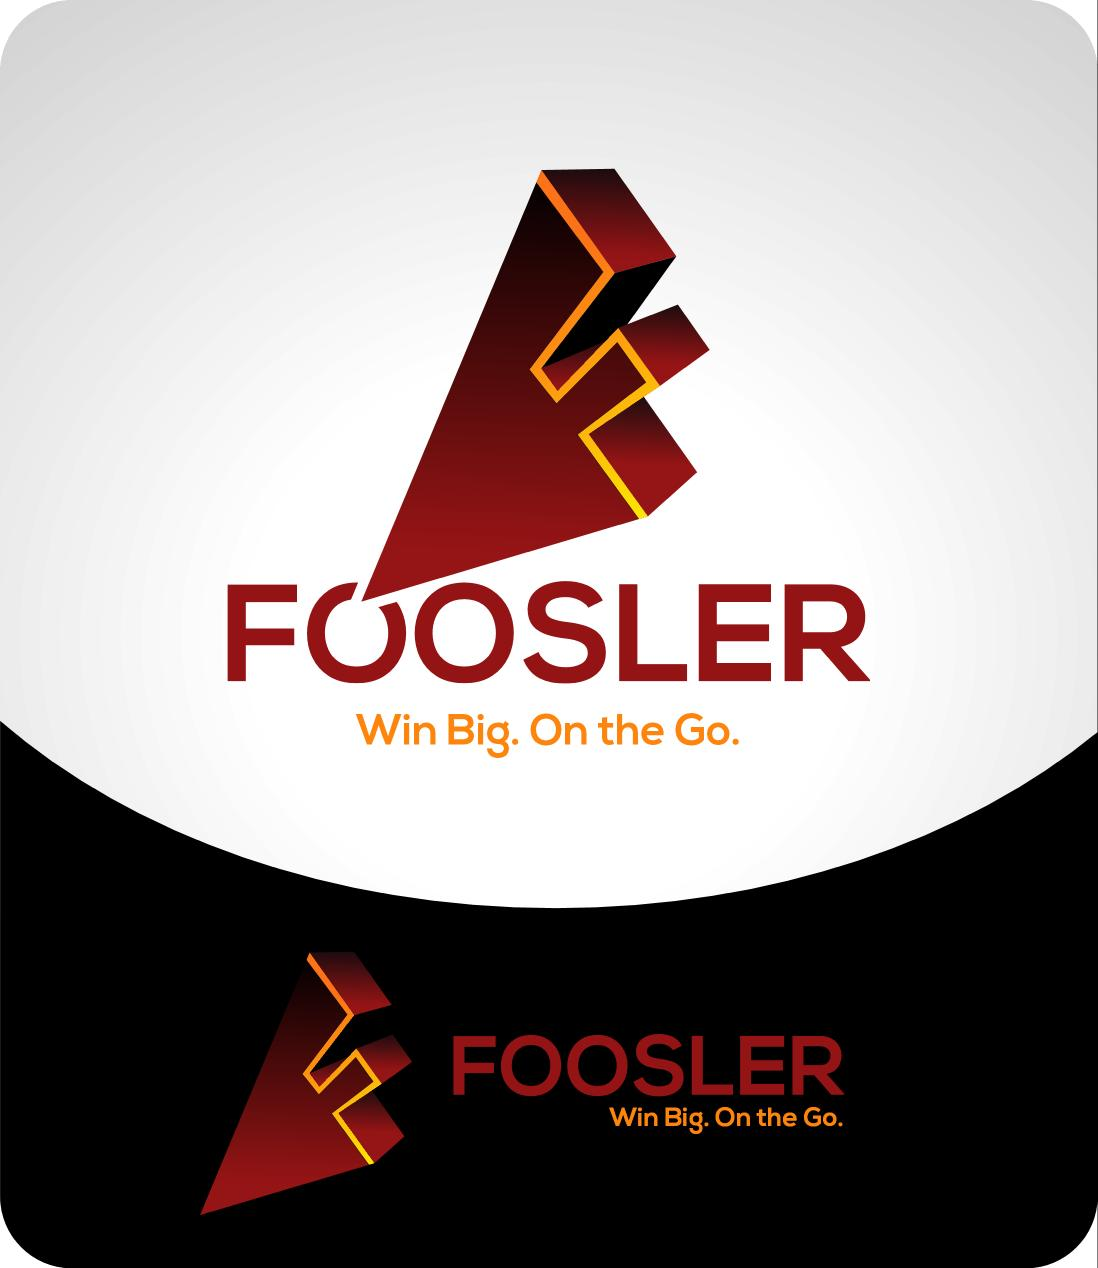 Logo Design by luvrenz - Entry No. 46 in the Logo Design Contest Foosler Logo Design.